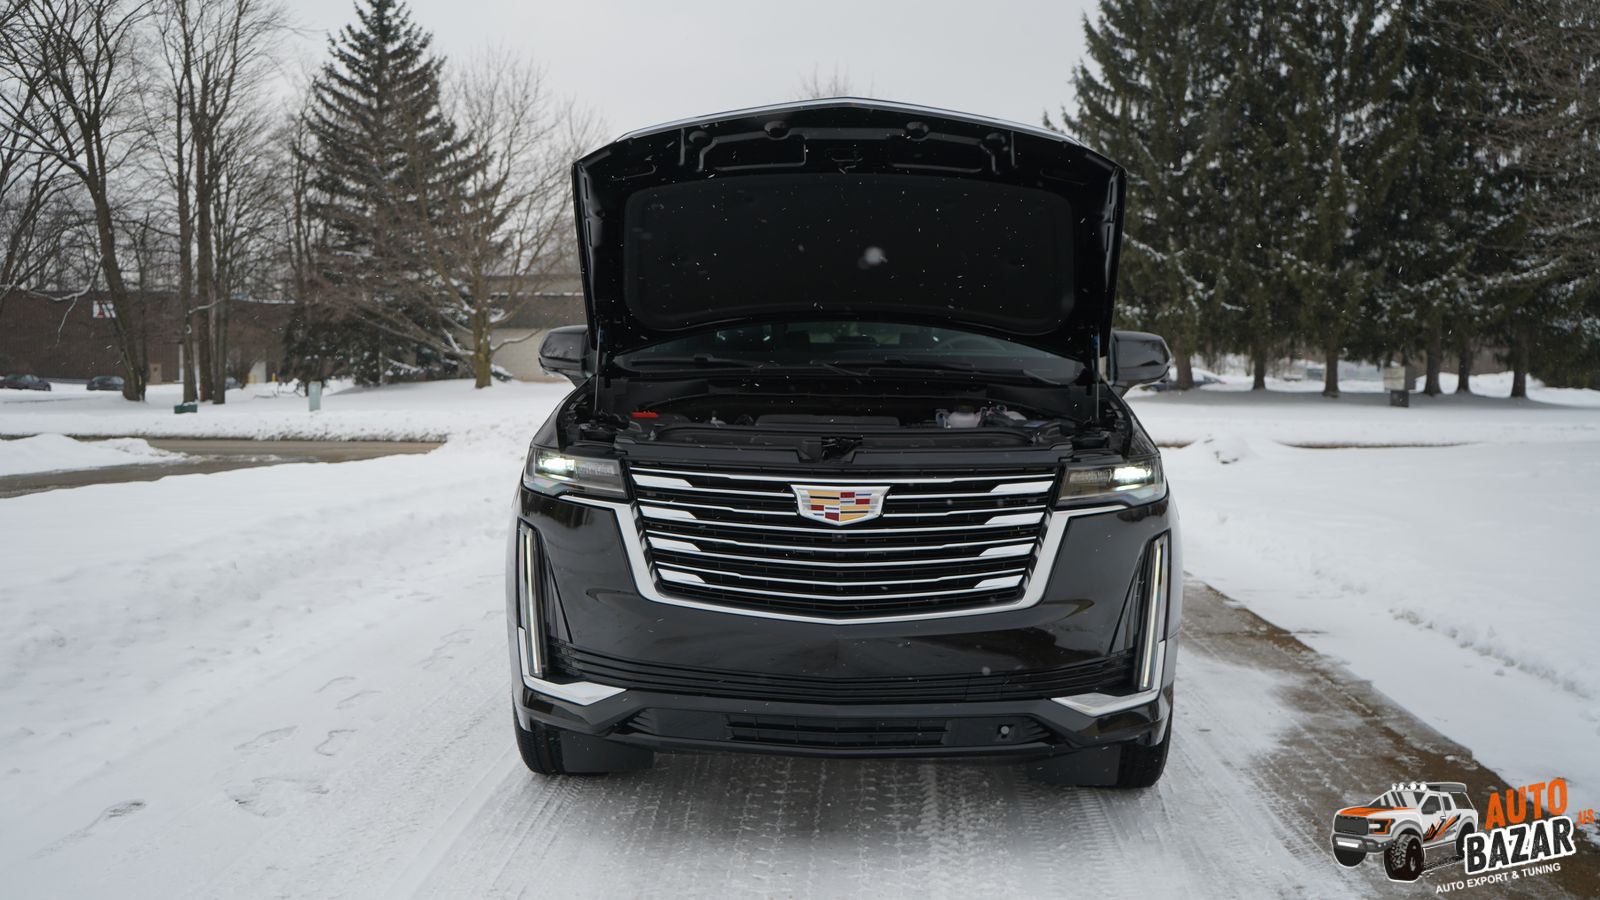 /storage/inventories/1103/2021 Cadillac Escalade 1103 (10).JPG